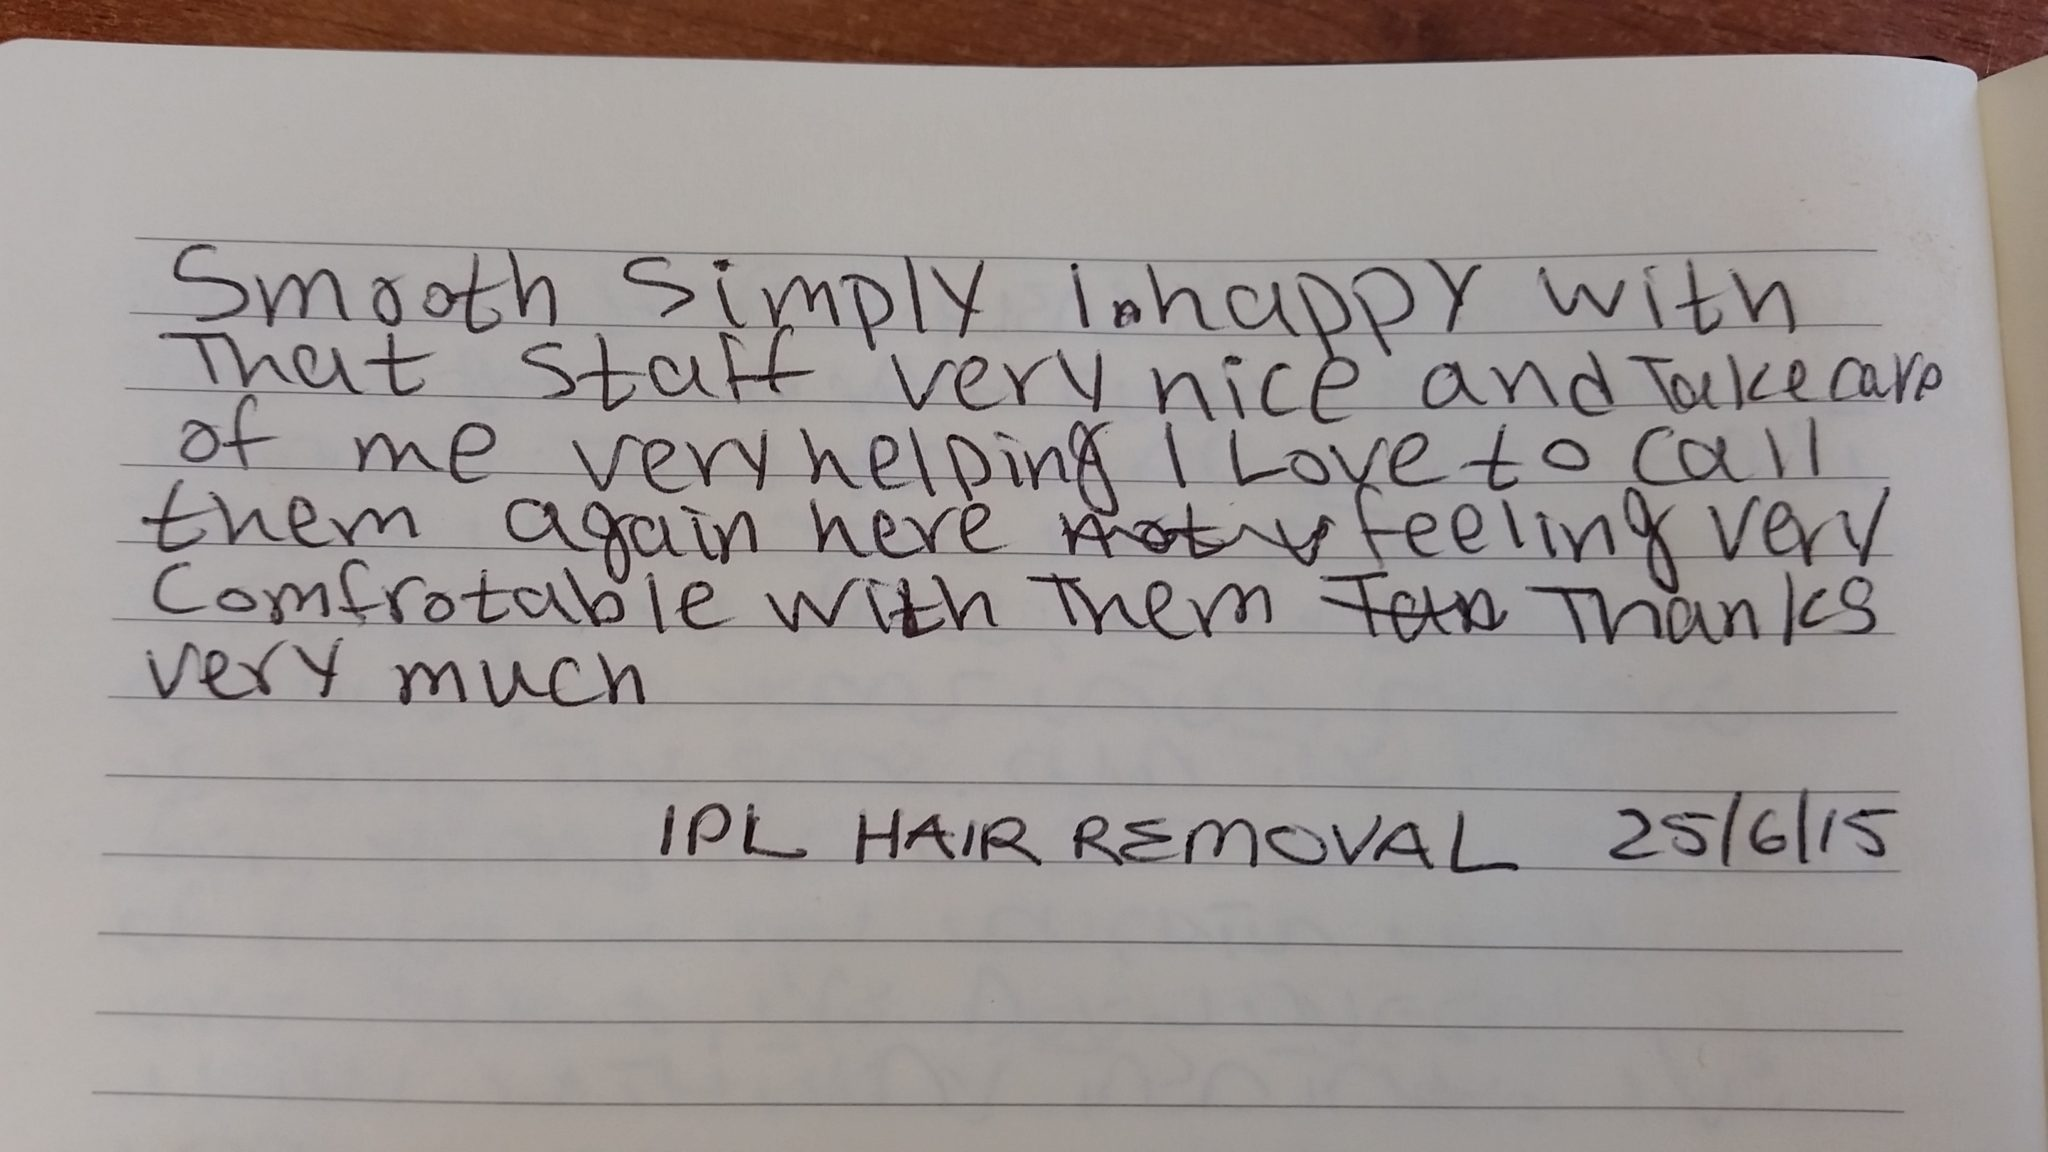 Laser Hair Removal Testimonial - Smooth and Simple